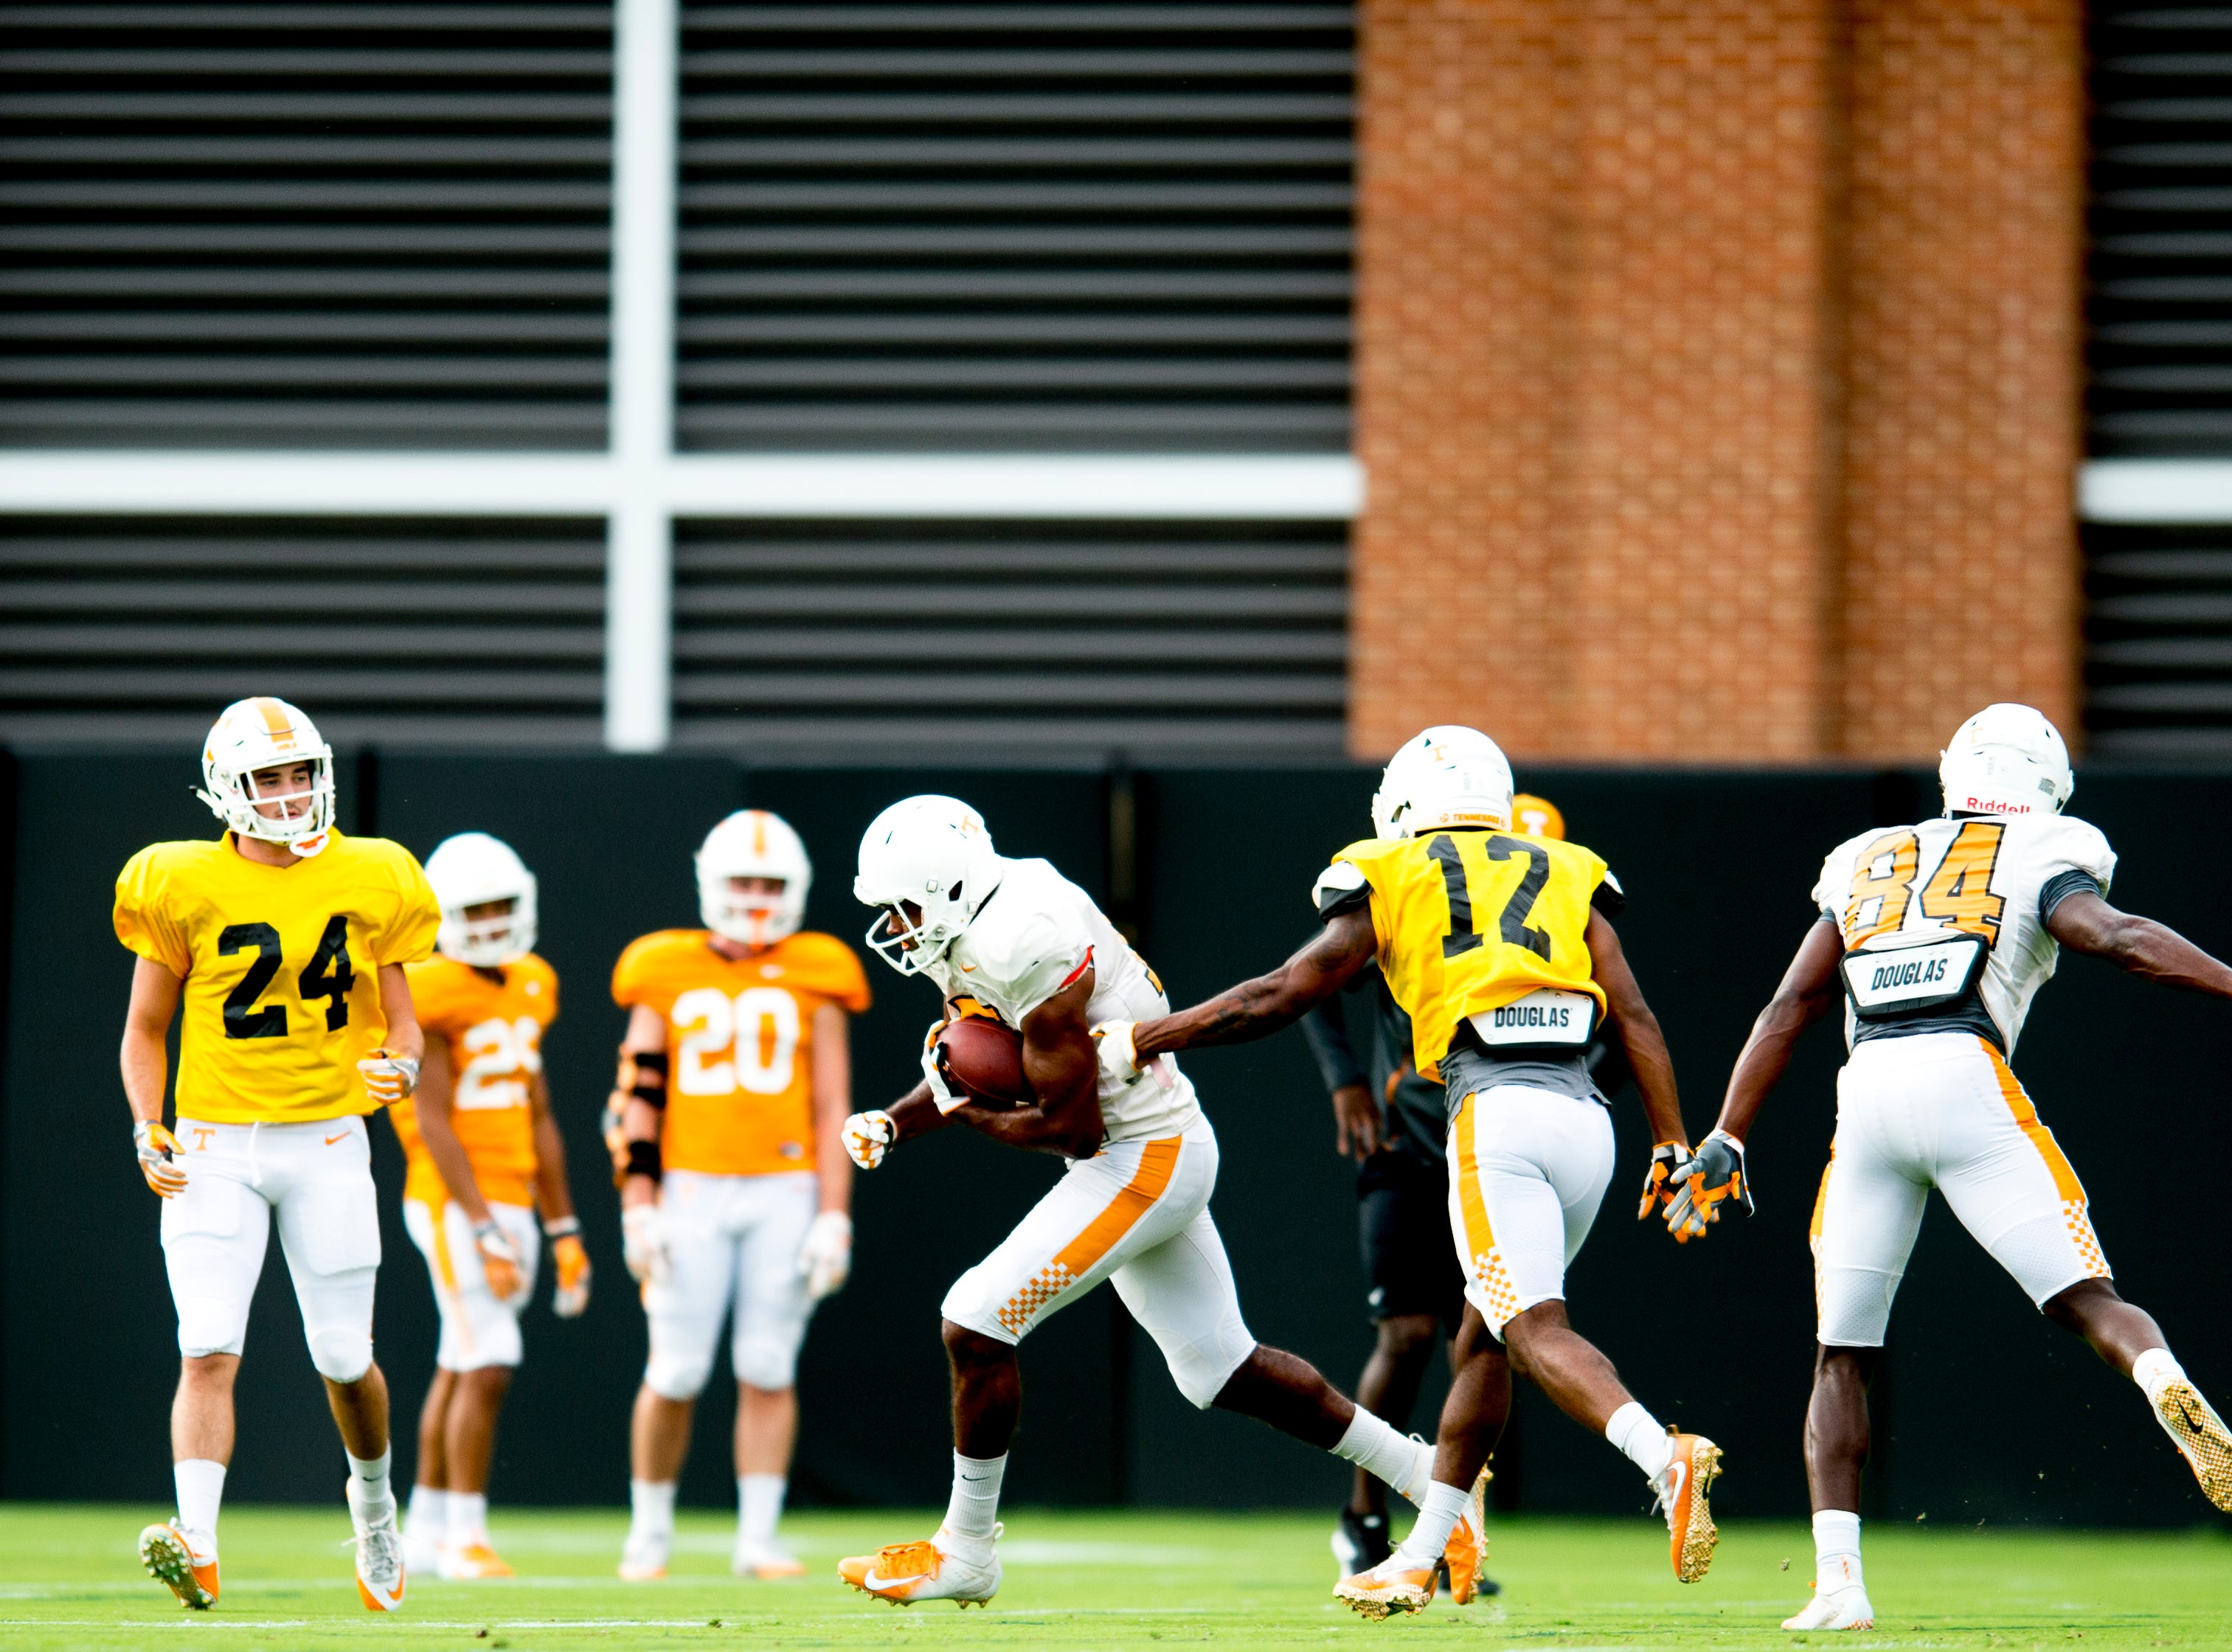 Tennessee wide receiver Jauan Jennings (15), Tennessee defensive back Shawn Shamburger (12) and Tennessee tight end James Brown (84) drill during Tennessee fall football practice at Haslam Field in Knoxville, Tennessee on Tuesday, October 9, 2018.